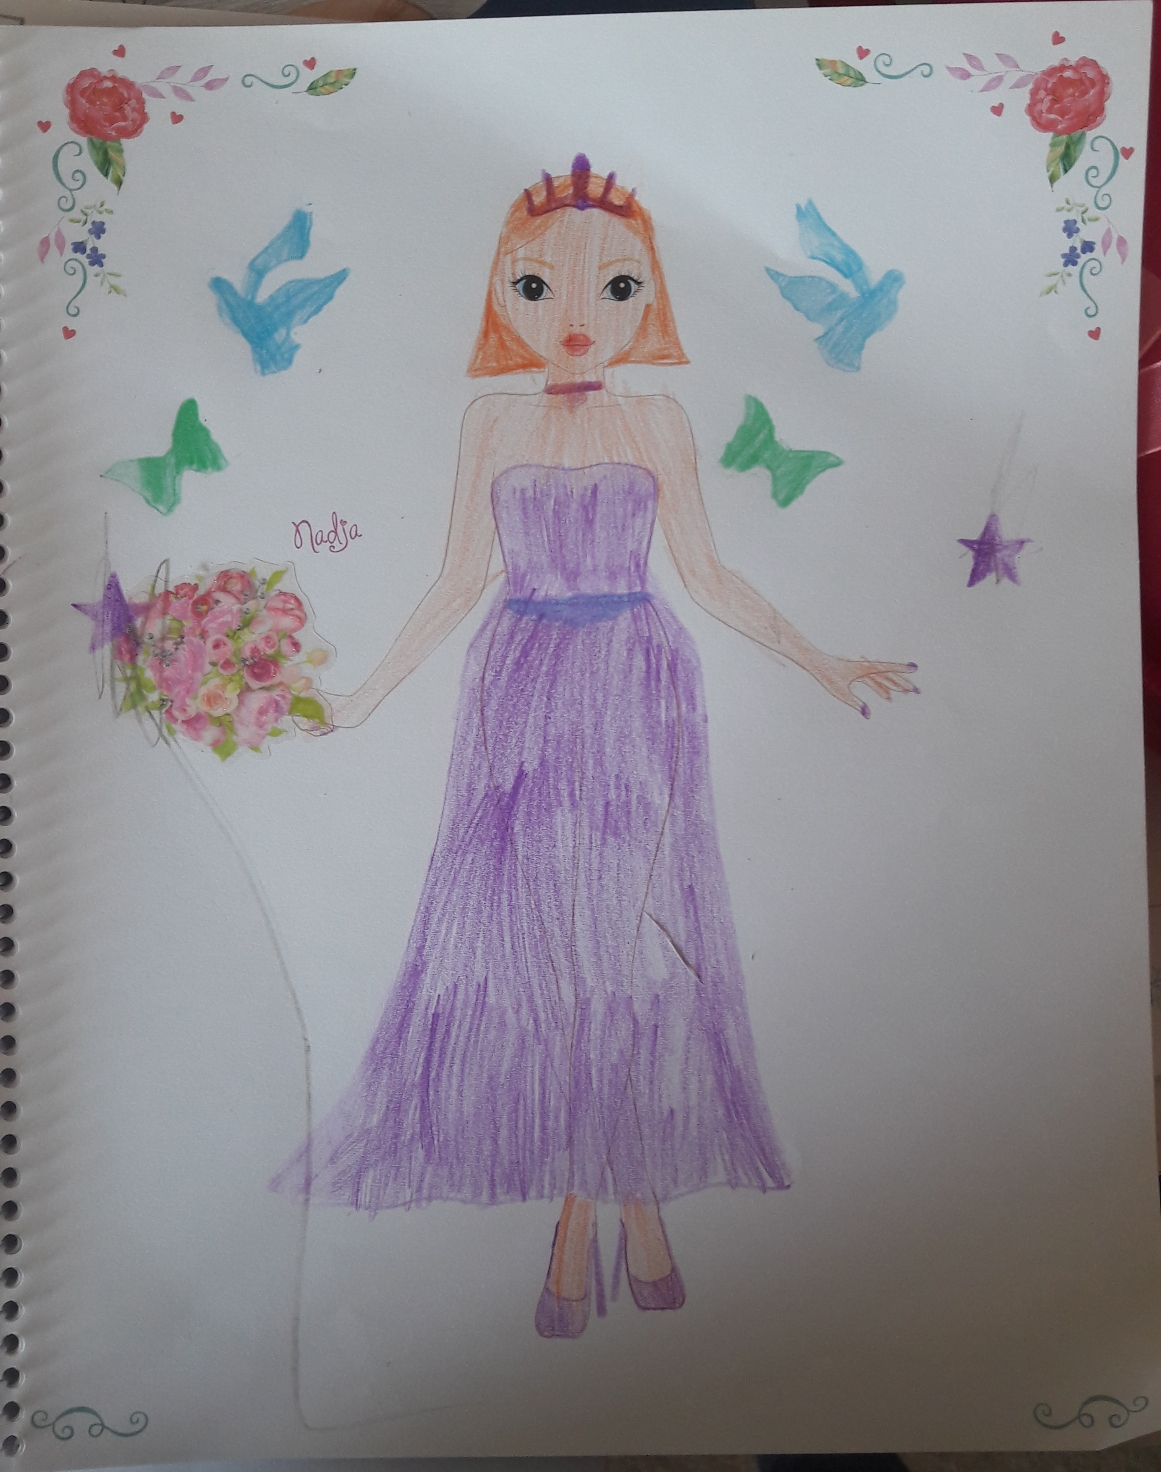 Naomi L., 9years, from Nice, France